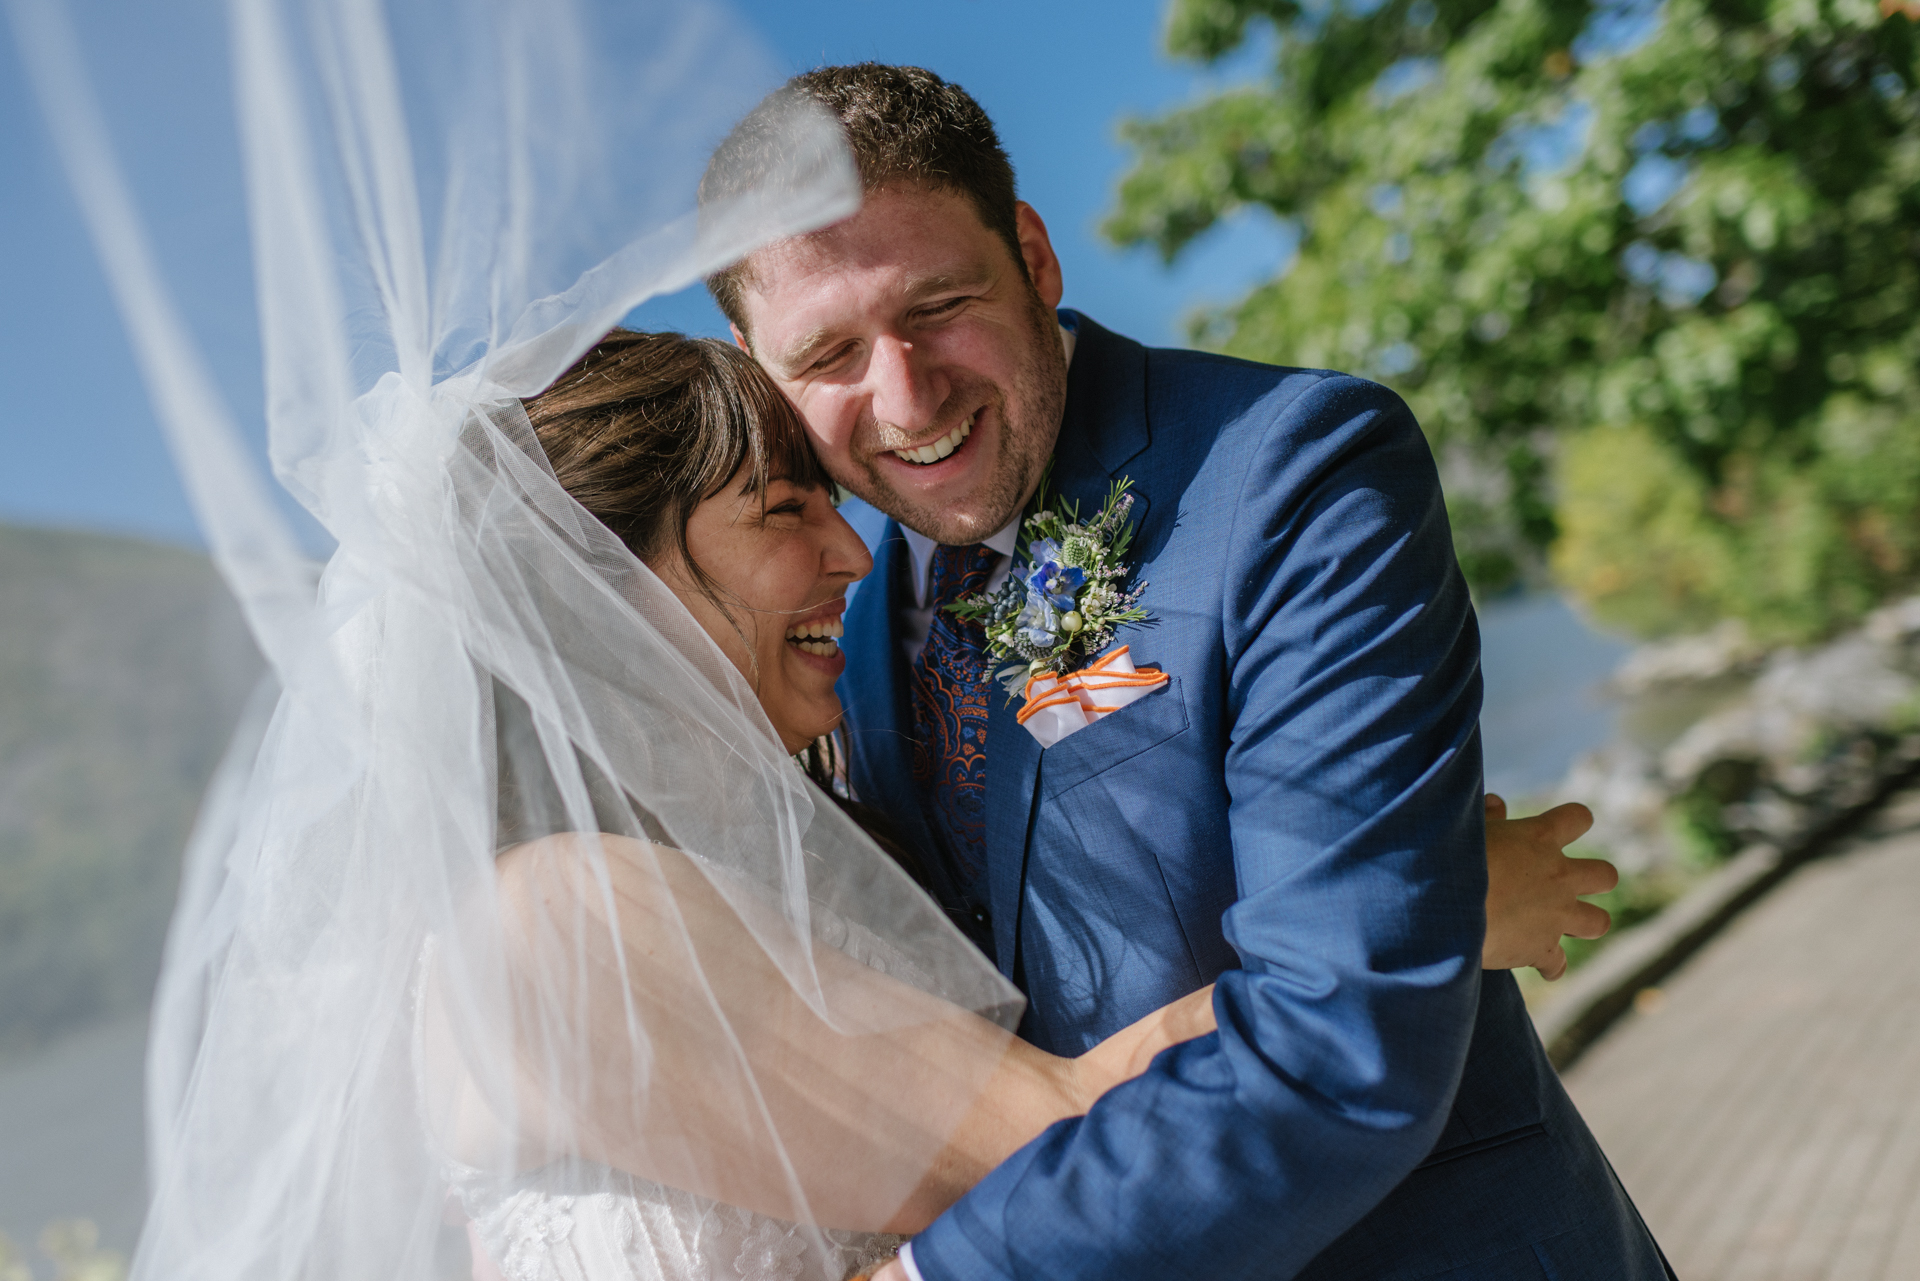 New York Wedding Portrait at Dockside Park, Cold Spring | The newlyweds embrace each other with joy as the bride's veil flies